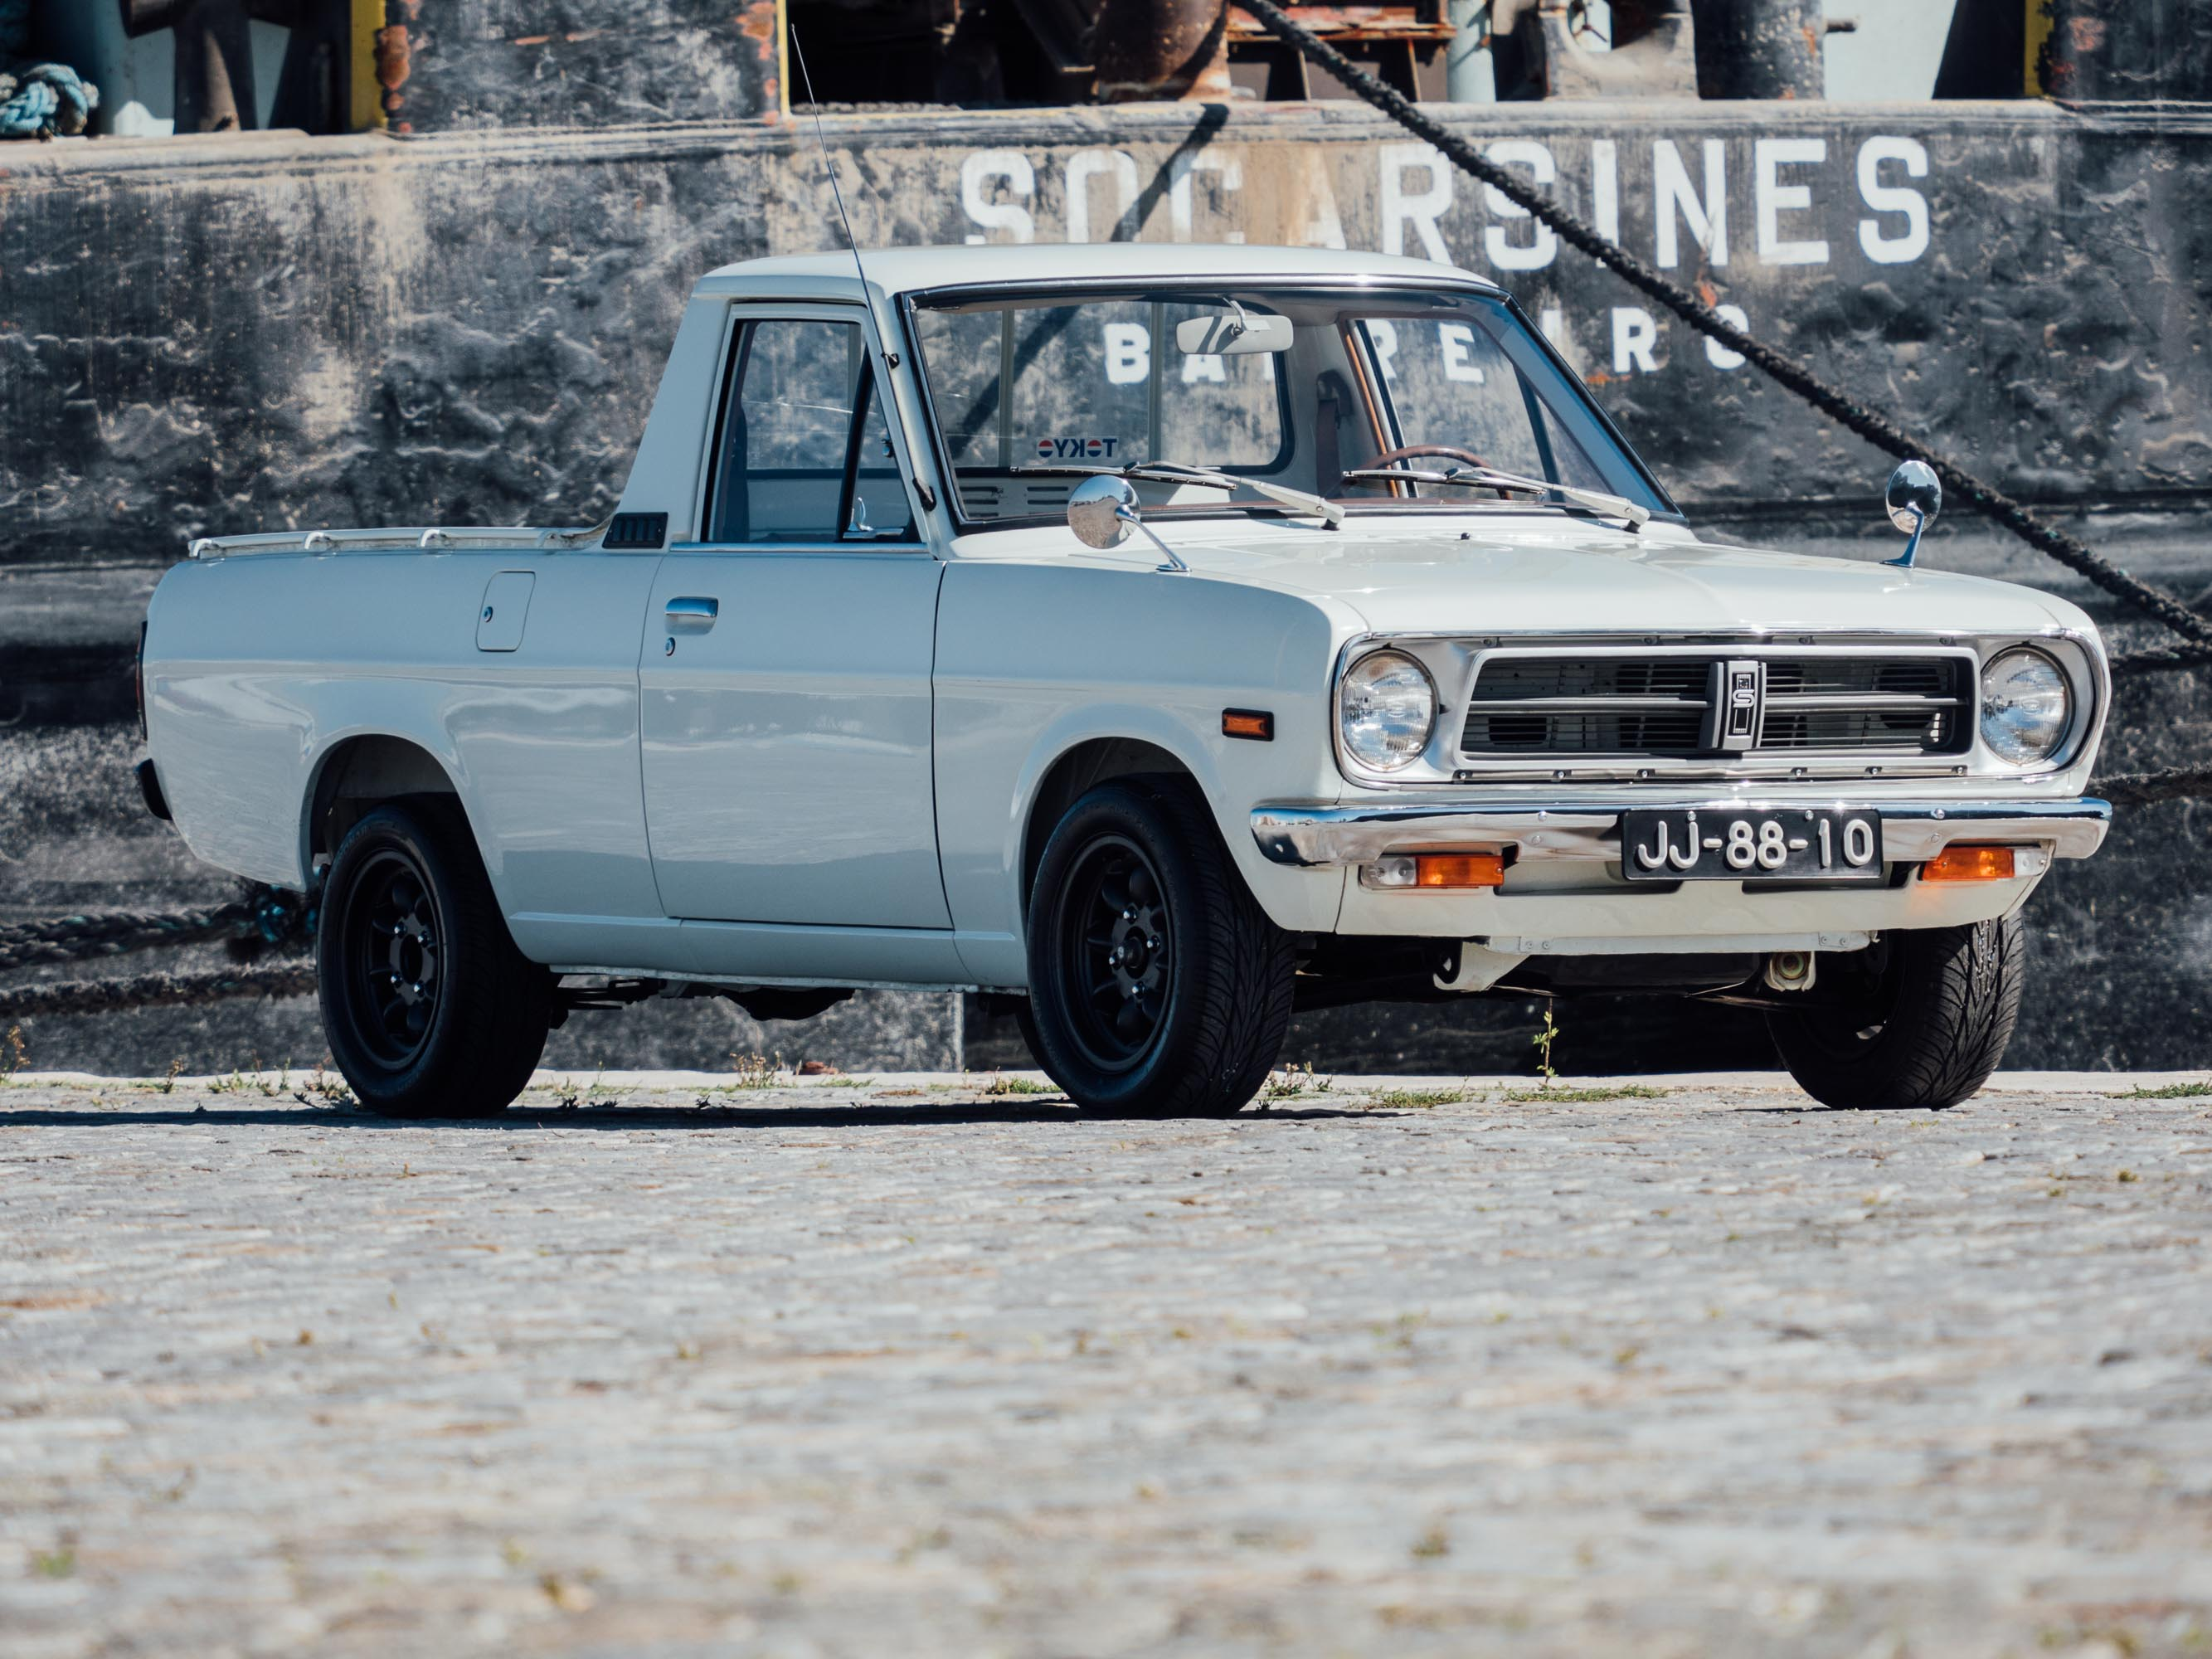 1974 Datsun Sunny 1200 Ute Jay Lenos Garage further 03 Acura Rsx Engine Diagram furthermore Search moreover motorsbros   audi80quattro in addition 2015 Audi S4 Overview C24488. on datsun 1200 coupe